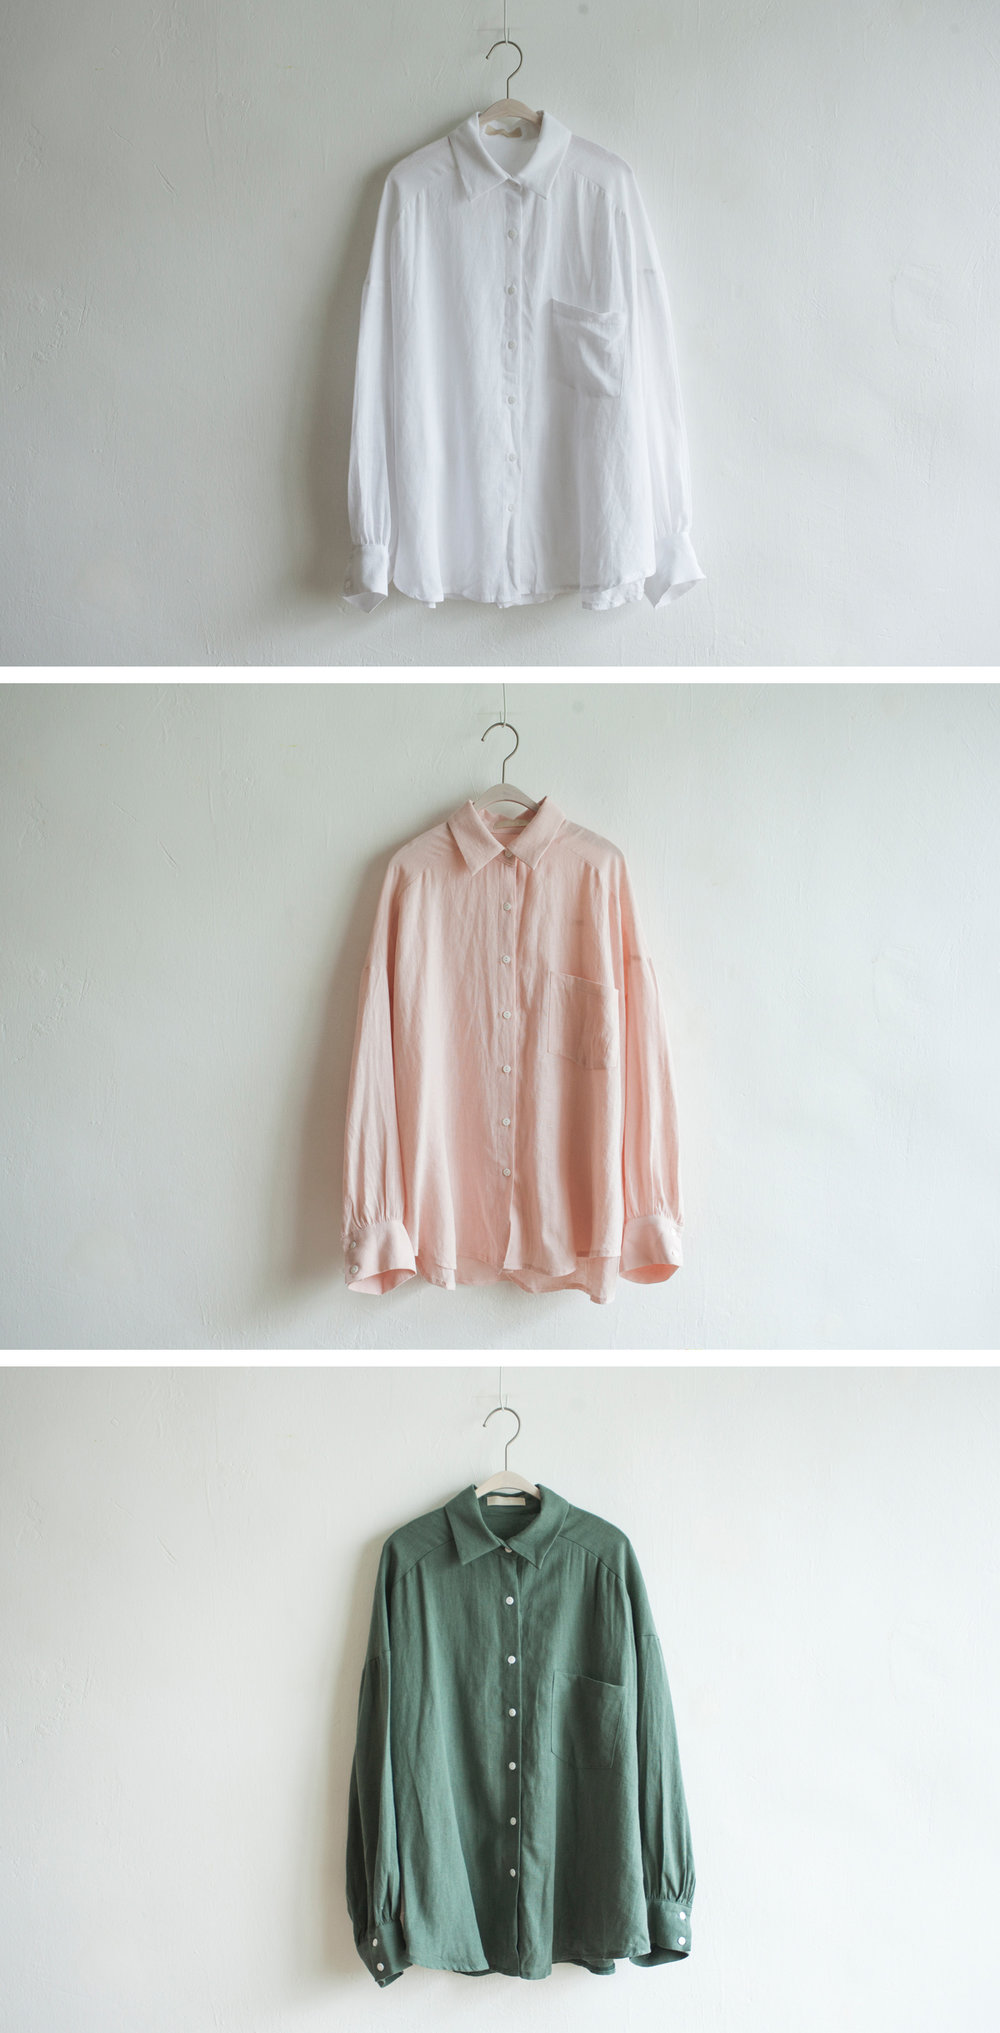 NBT800 reneska cotton loose shirt early bird price: HK$328 / NT$1410    regular price: HK$378 / NT$1630    color: white / pink / green    made in korea       measurement (cm)    shoulder flexible    bust 123    length 68 sleeves 60